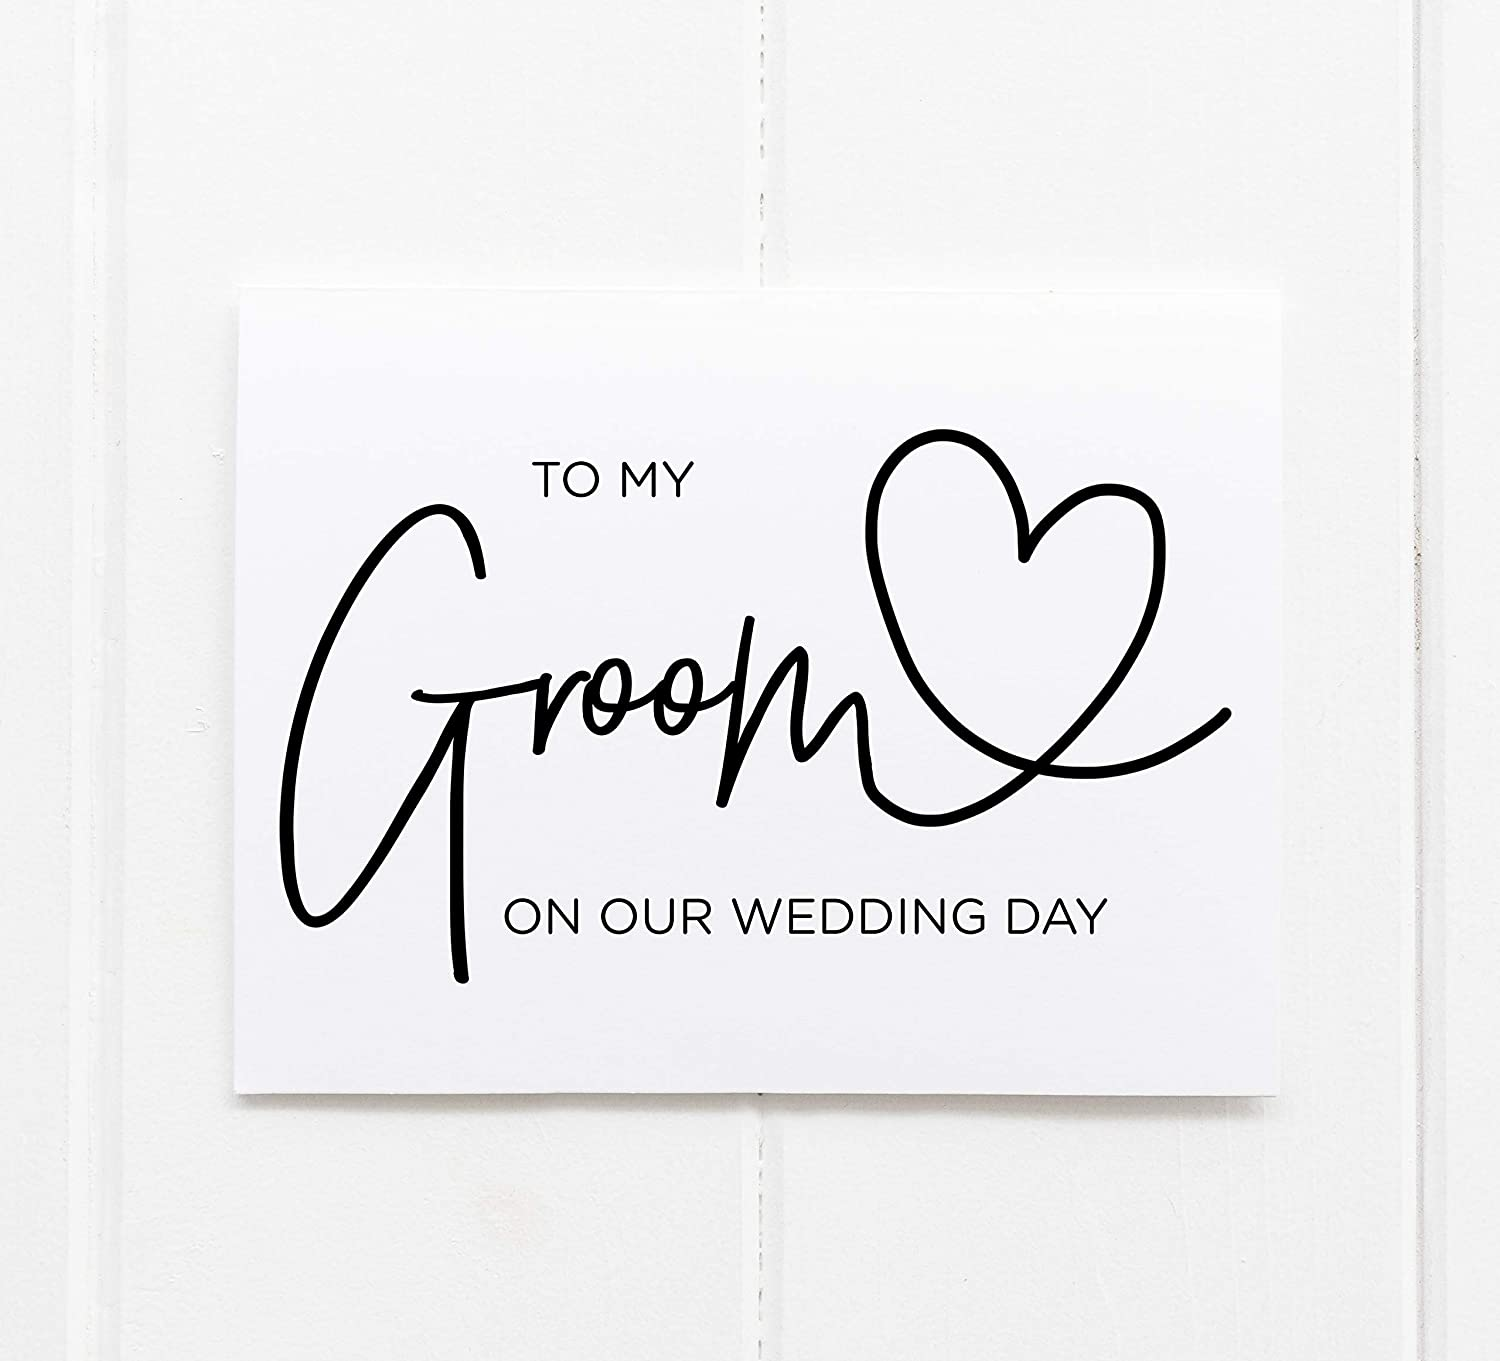 Groom Card Groom Gift To My Groom on Our Wedding Day Card Gift from Bride